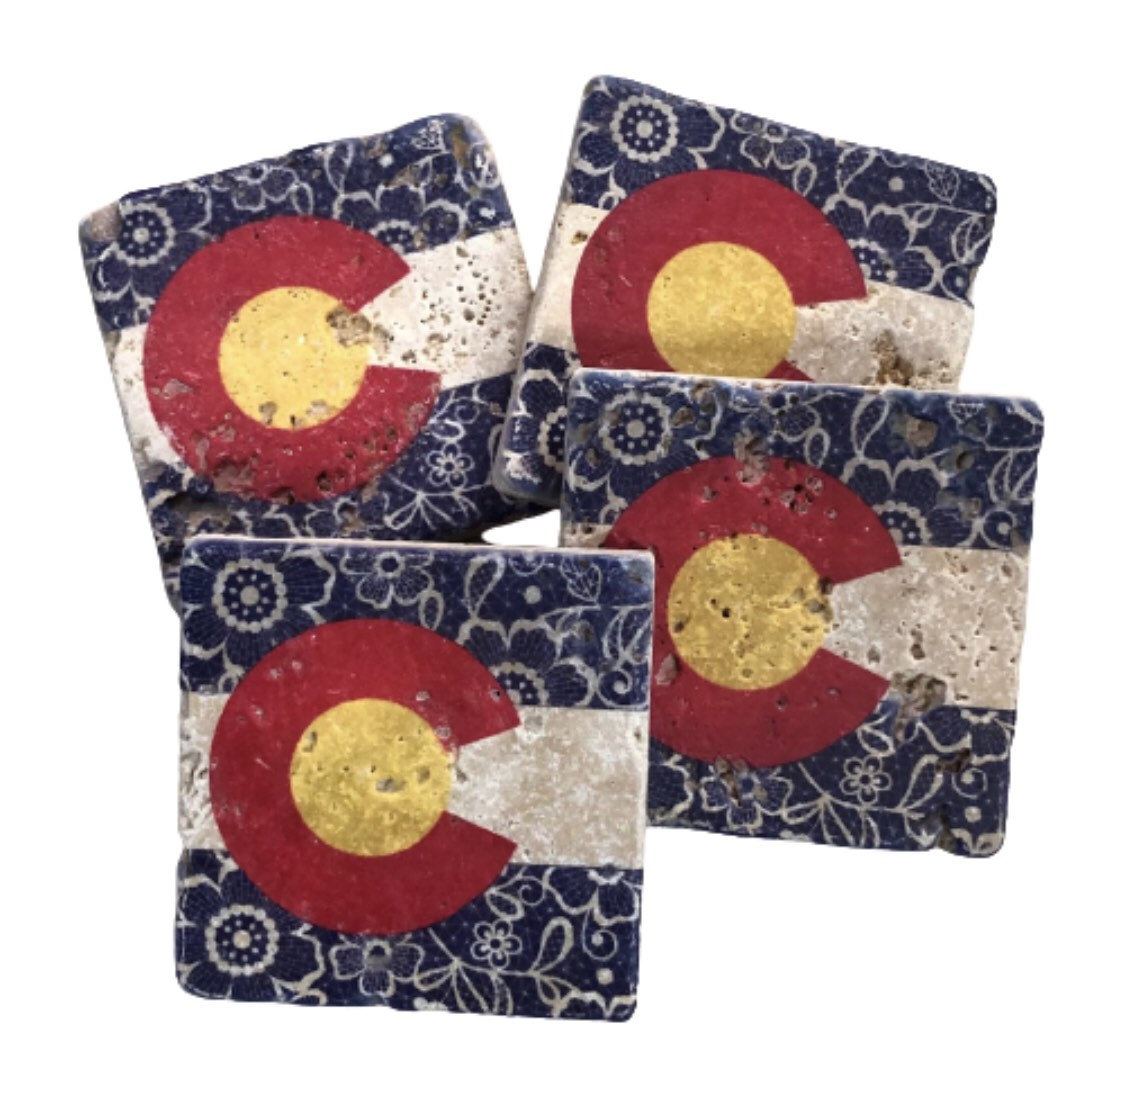 Coaster Set Colorado Lace State Flag Natural Stone Coasters Set of 4 with Full Cork Bottom Colorado State